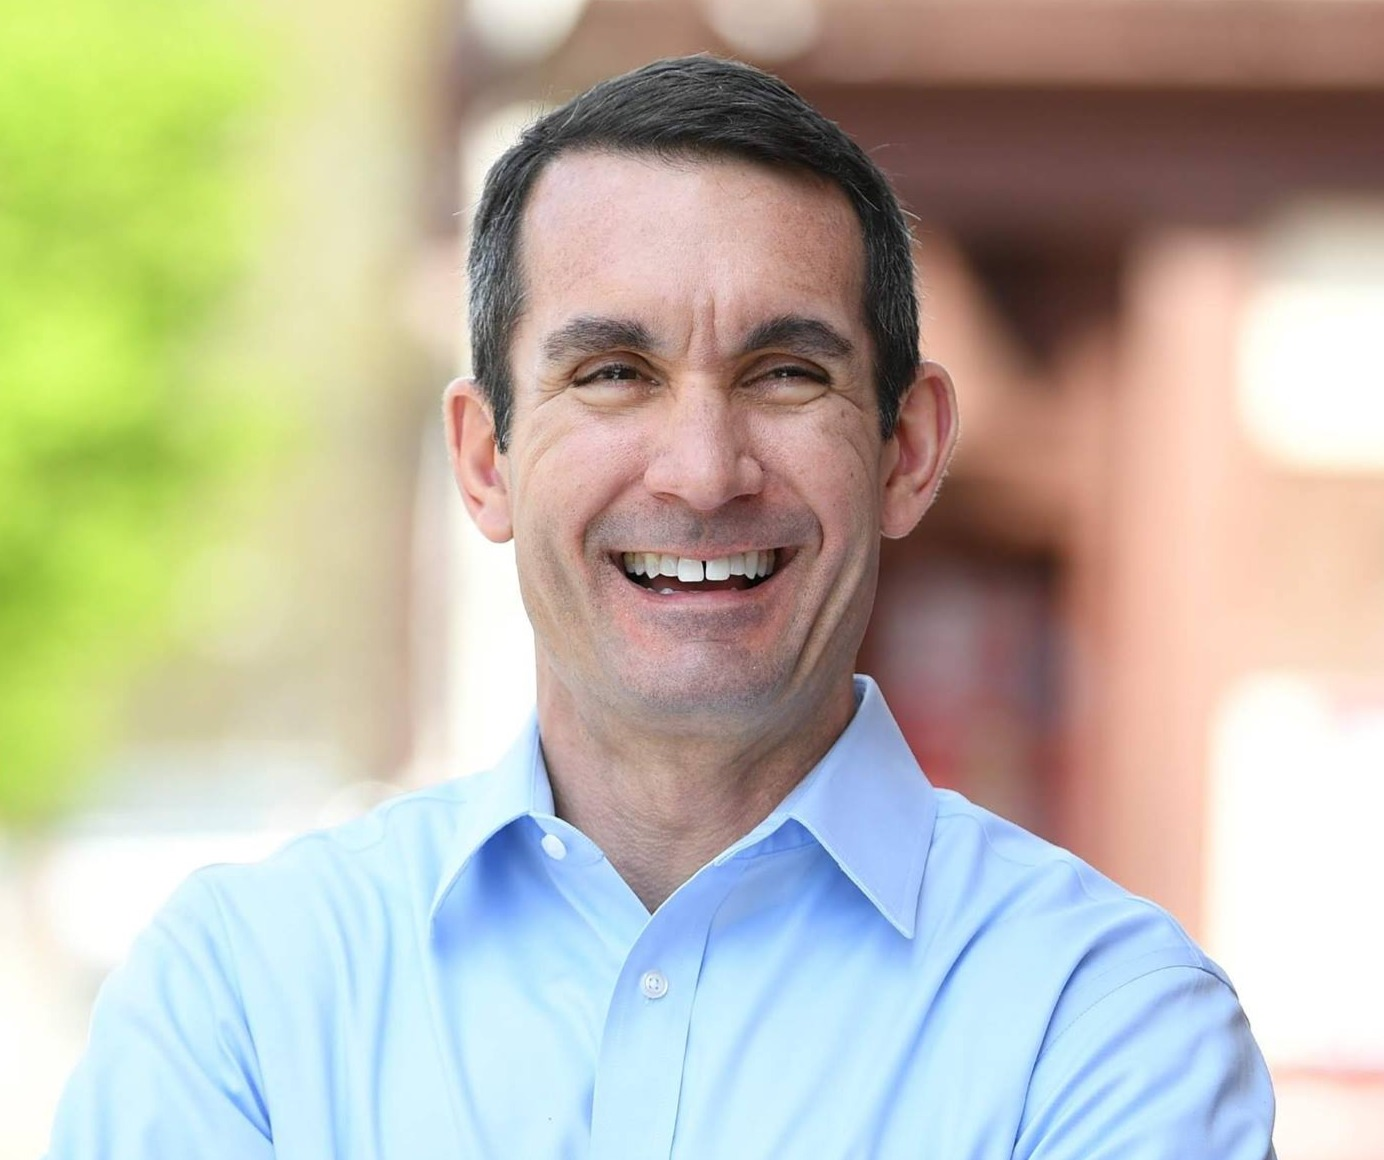 Eugene DePasquale for PA's 10th Congressional District